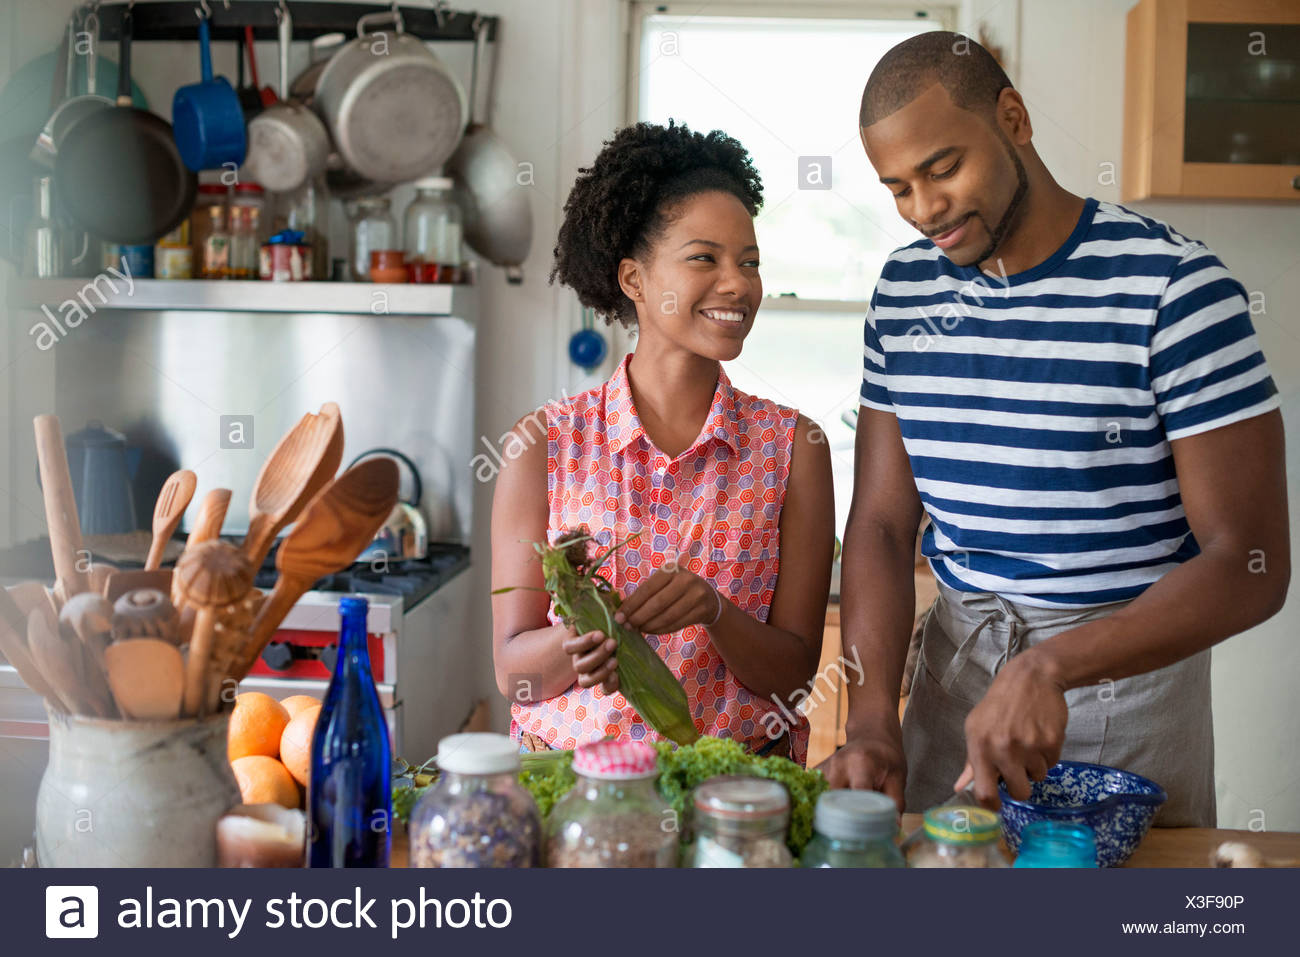 Lifestyle. Two people working in a farmhouse kitchen. - Stock Image